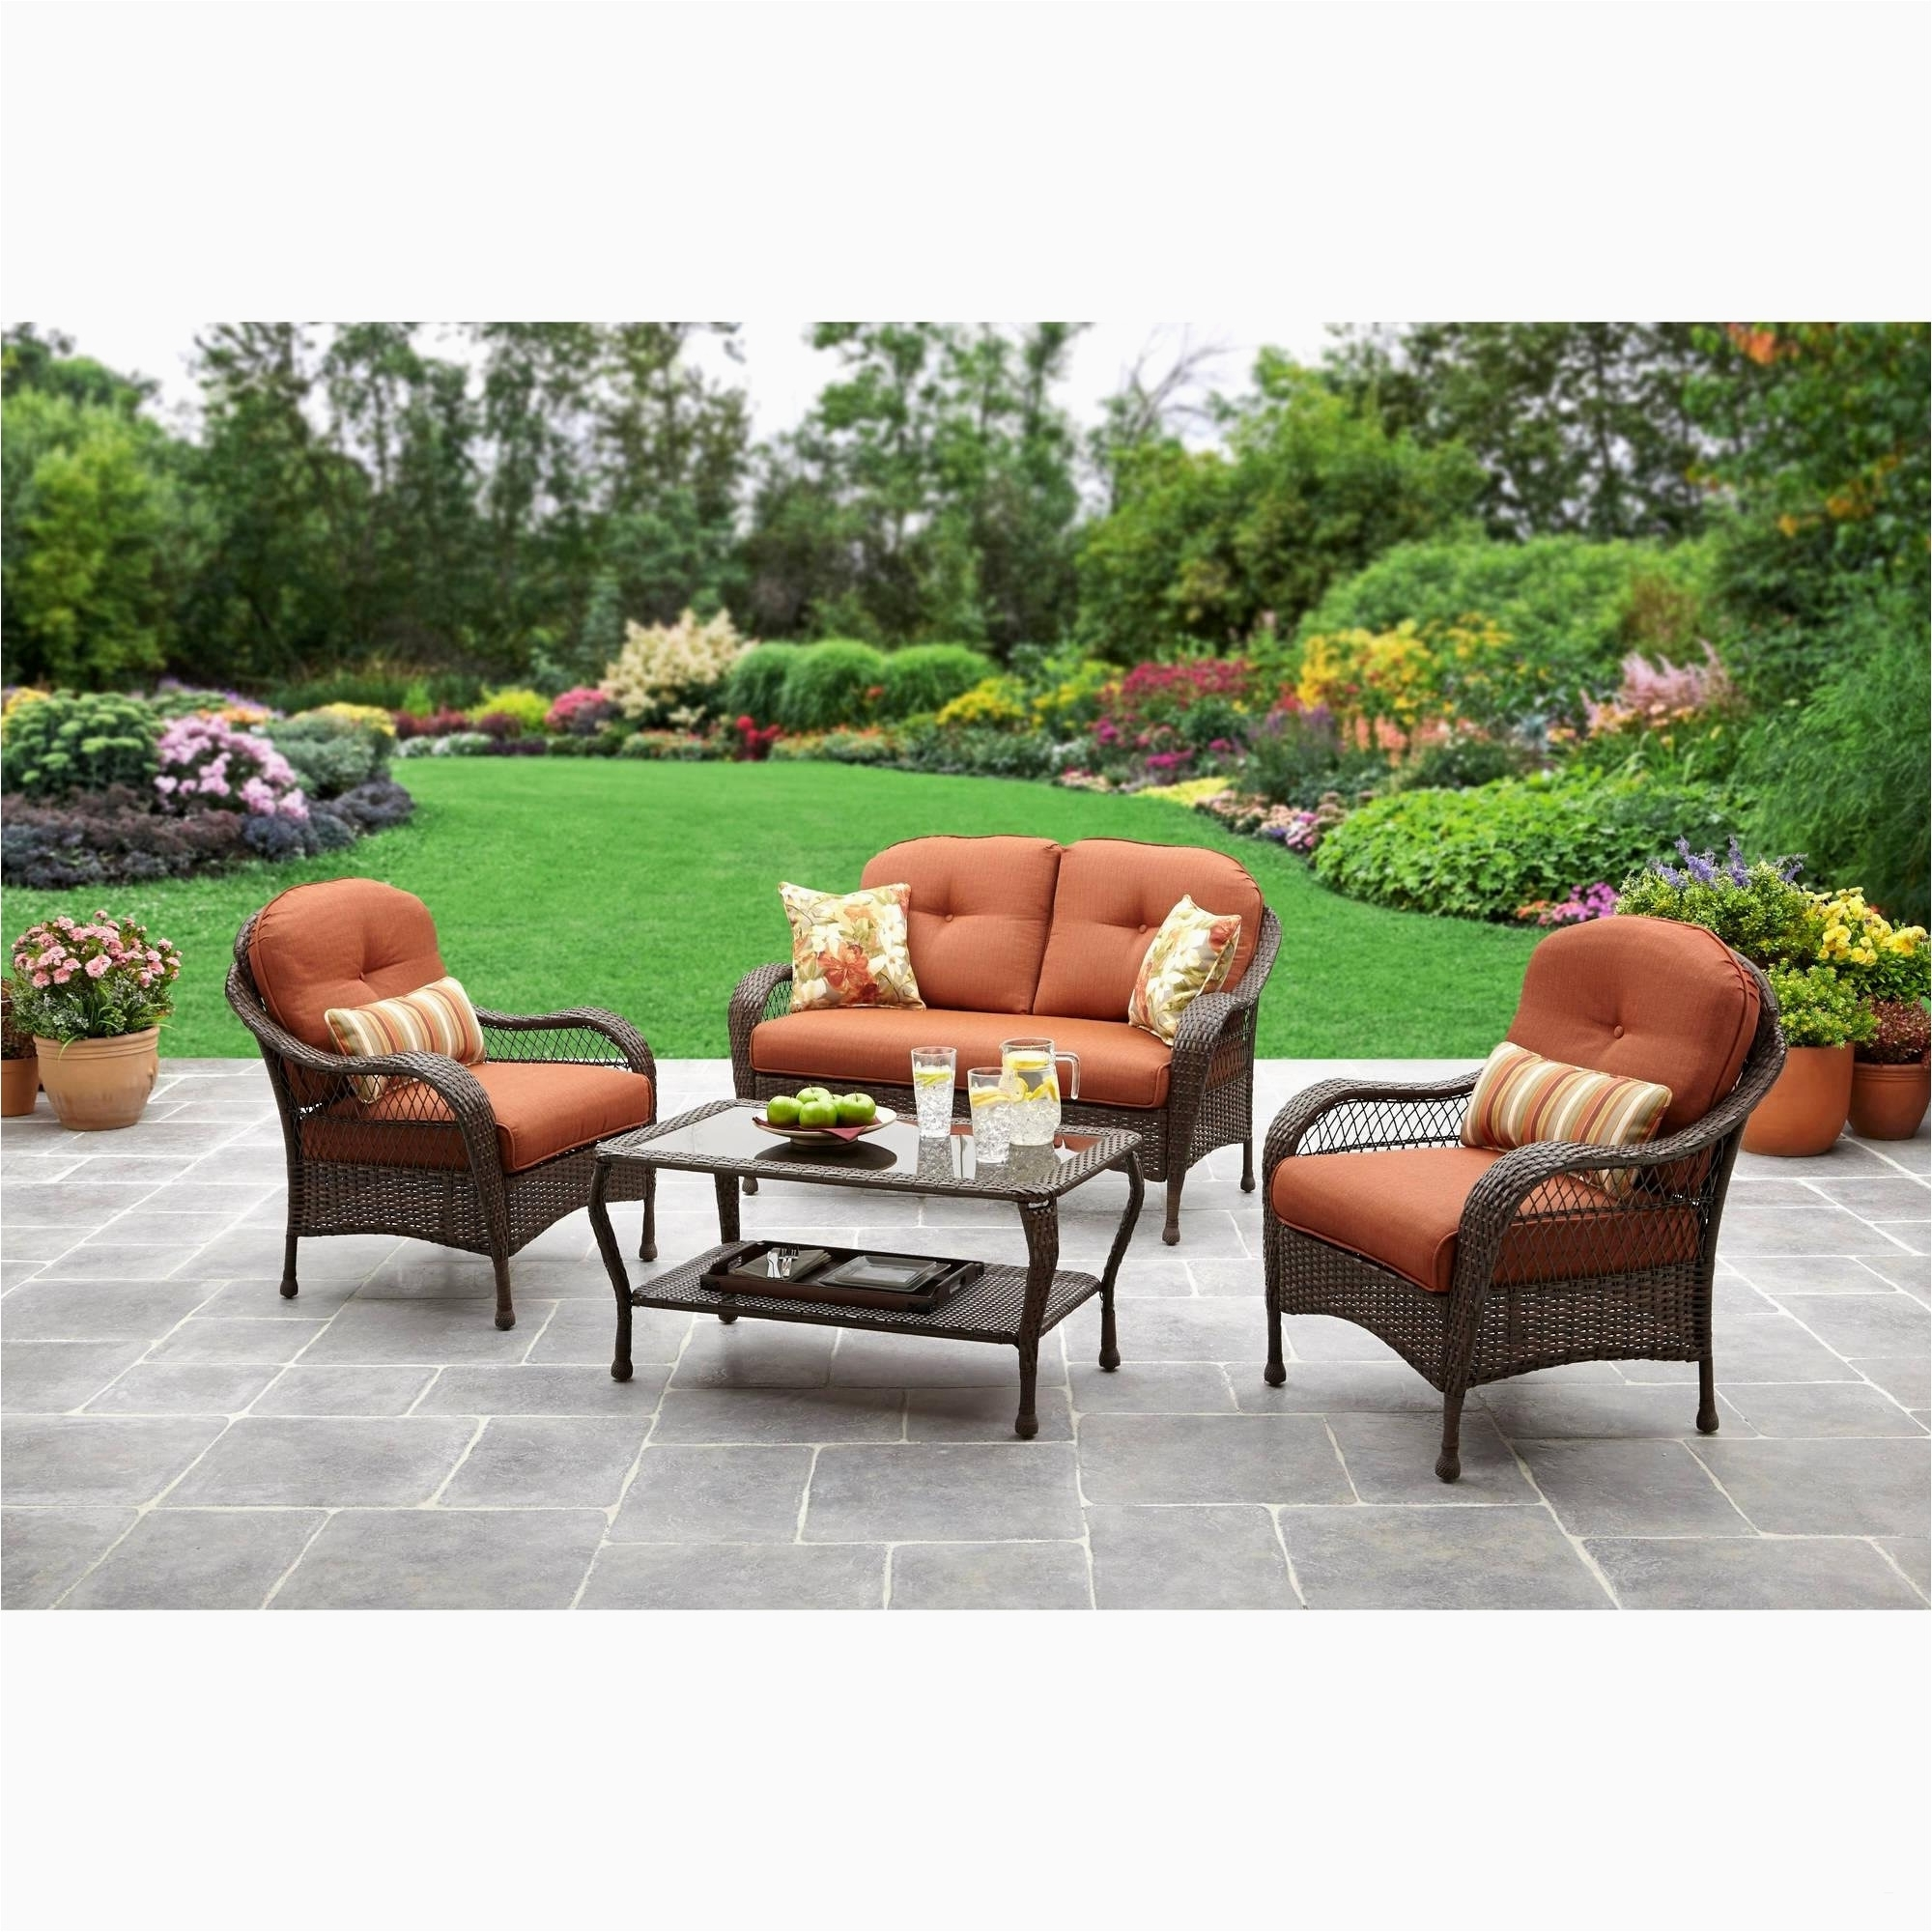 Patio Conversation Sets With Umbrella For Well Known Patio Umbrellas Costco – Awesome Conversation Sets Patio Furniture (View 20 of 20)